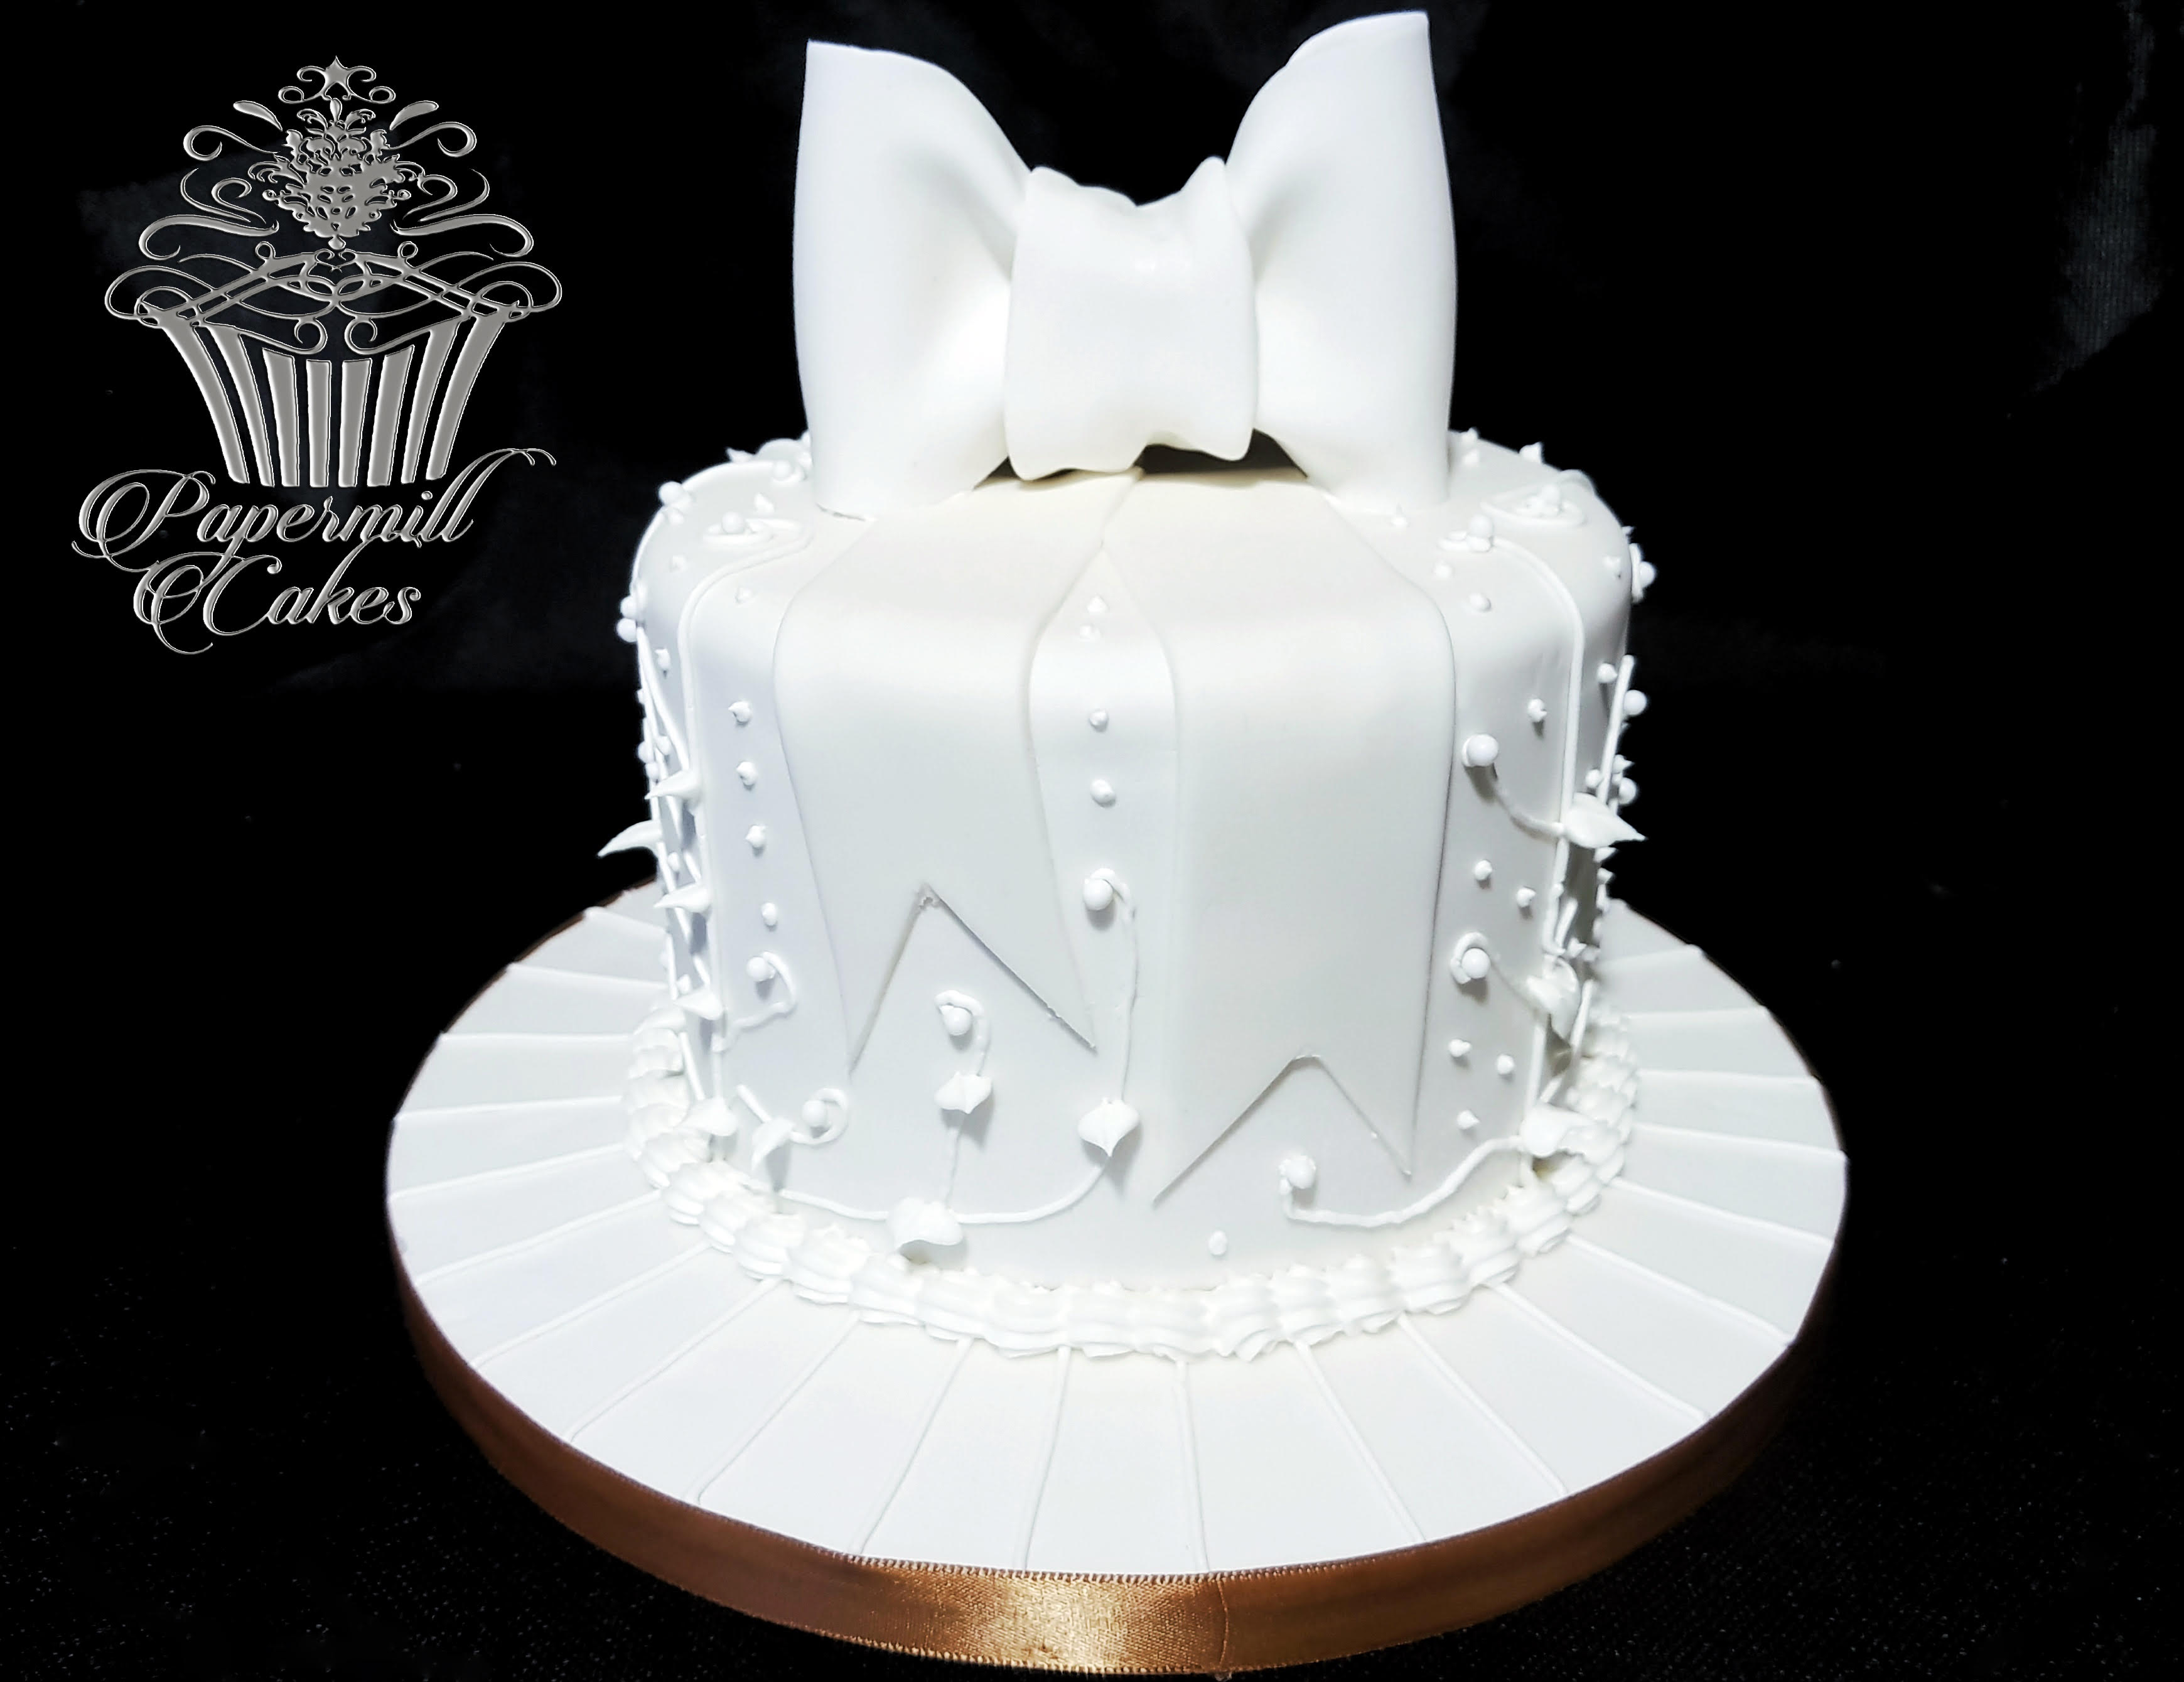 Celebration cake with royal icing